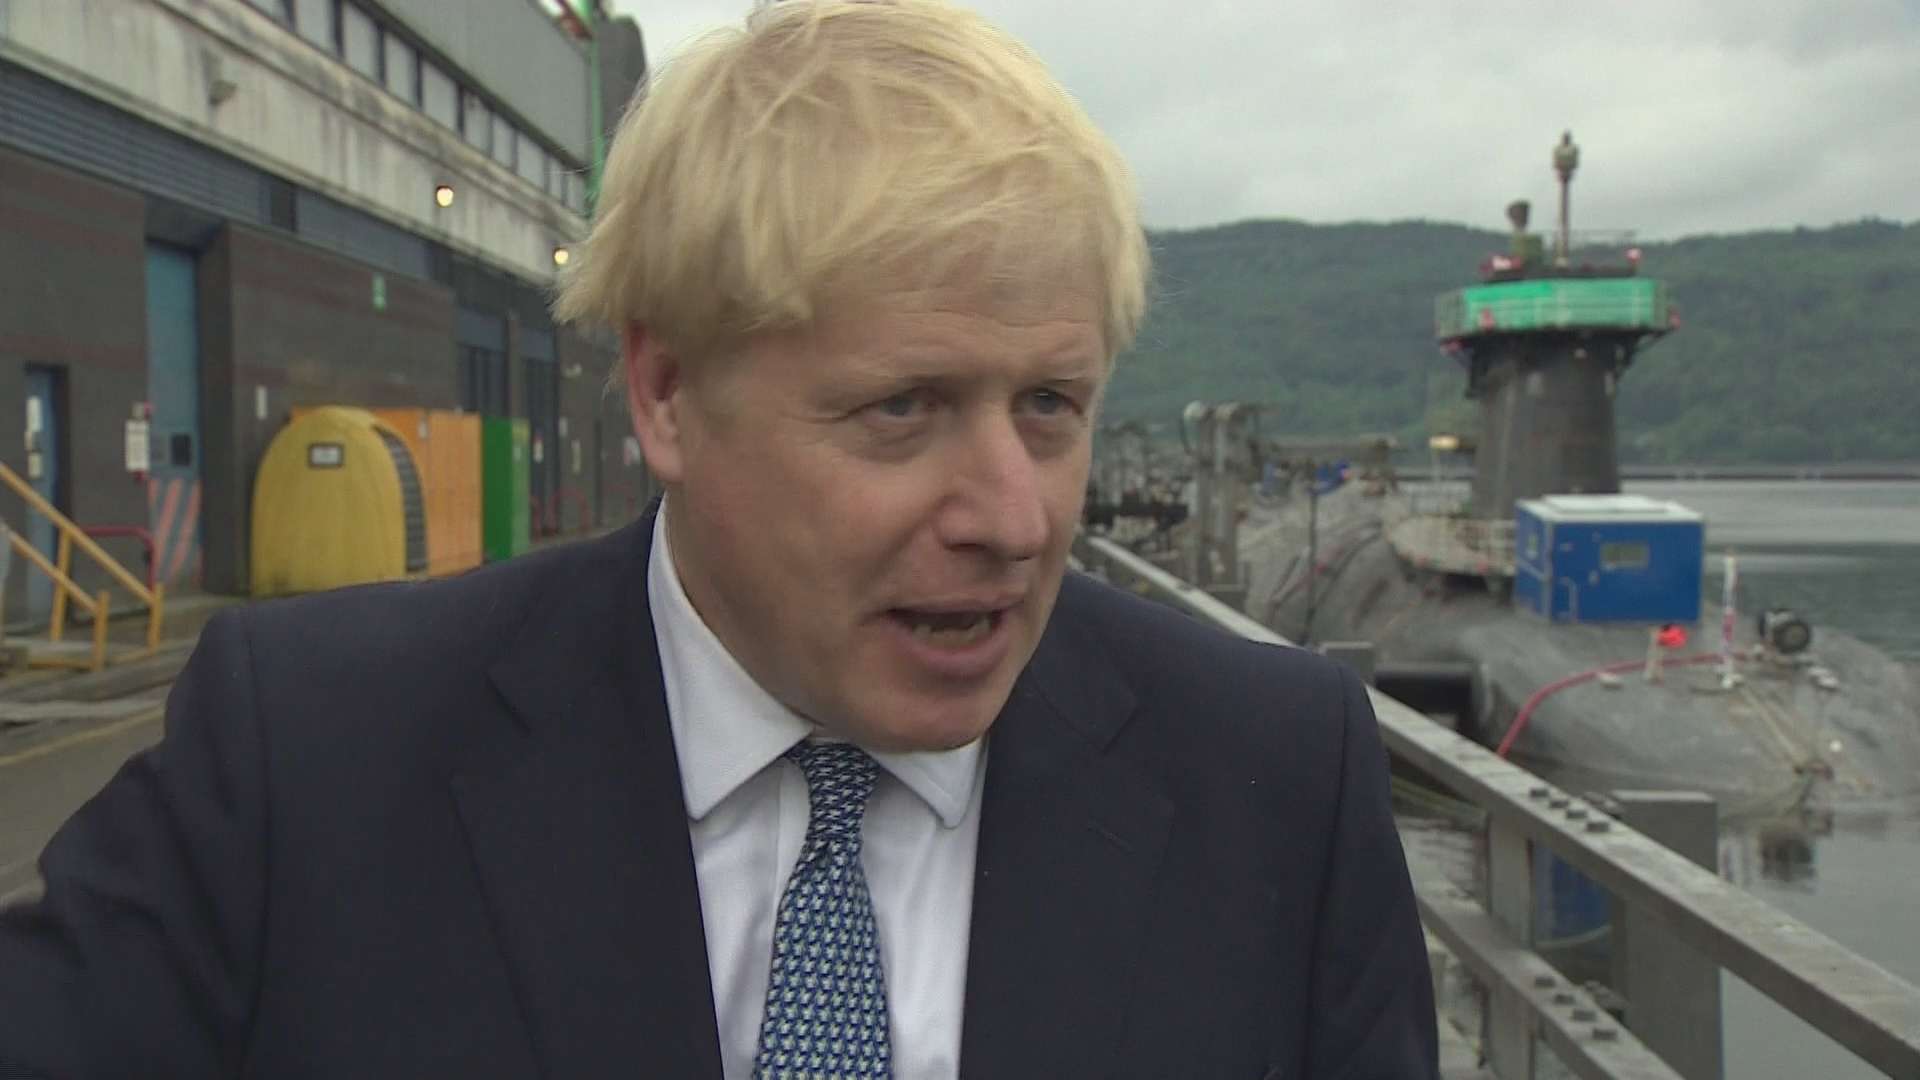 Boris Johnson Set To Campaign For Expenses Scandal MP's Re-Election To Protect Thin Majority